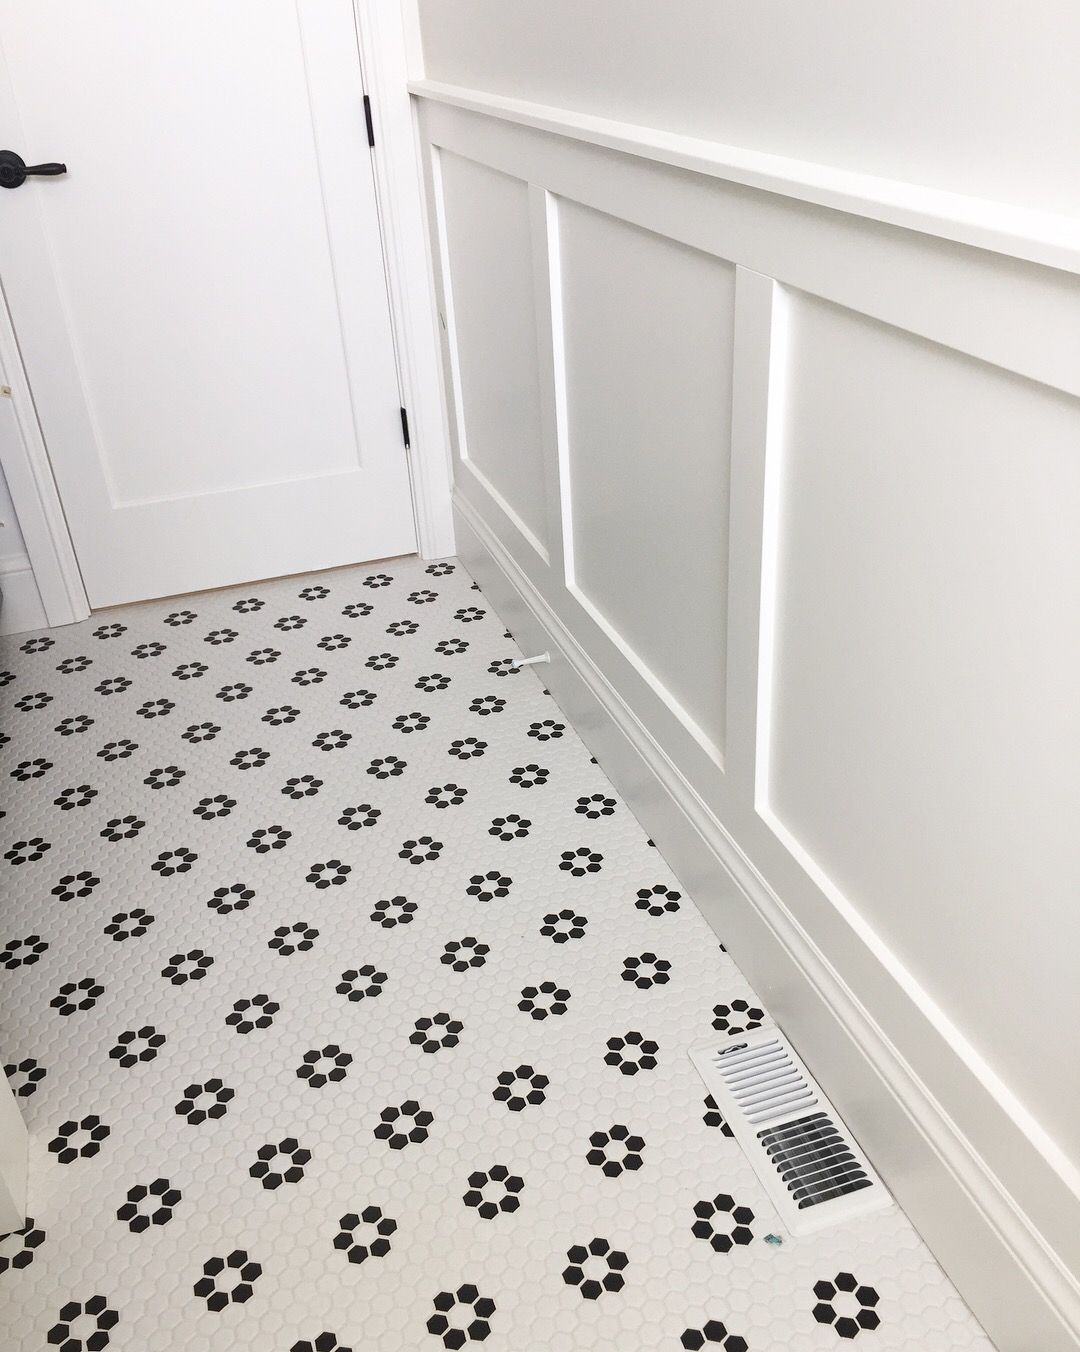 Black And White Hex Tile Floors And Wainscoting Bathroomvanitymakeup Black And White Tiles Bathroom Vintage Bathroom Tile White Tile Bathroom Floor